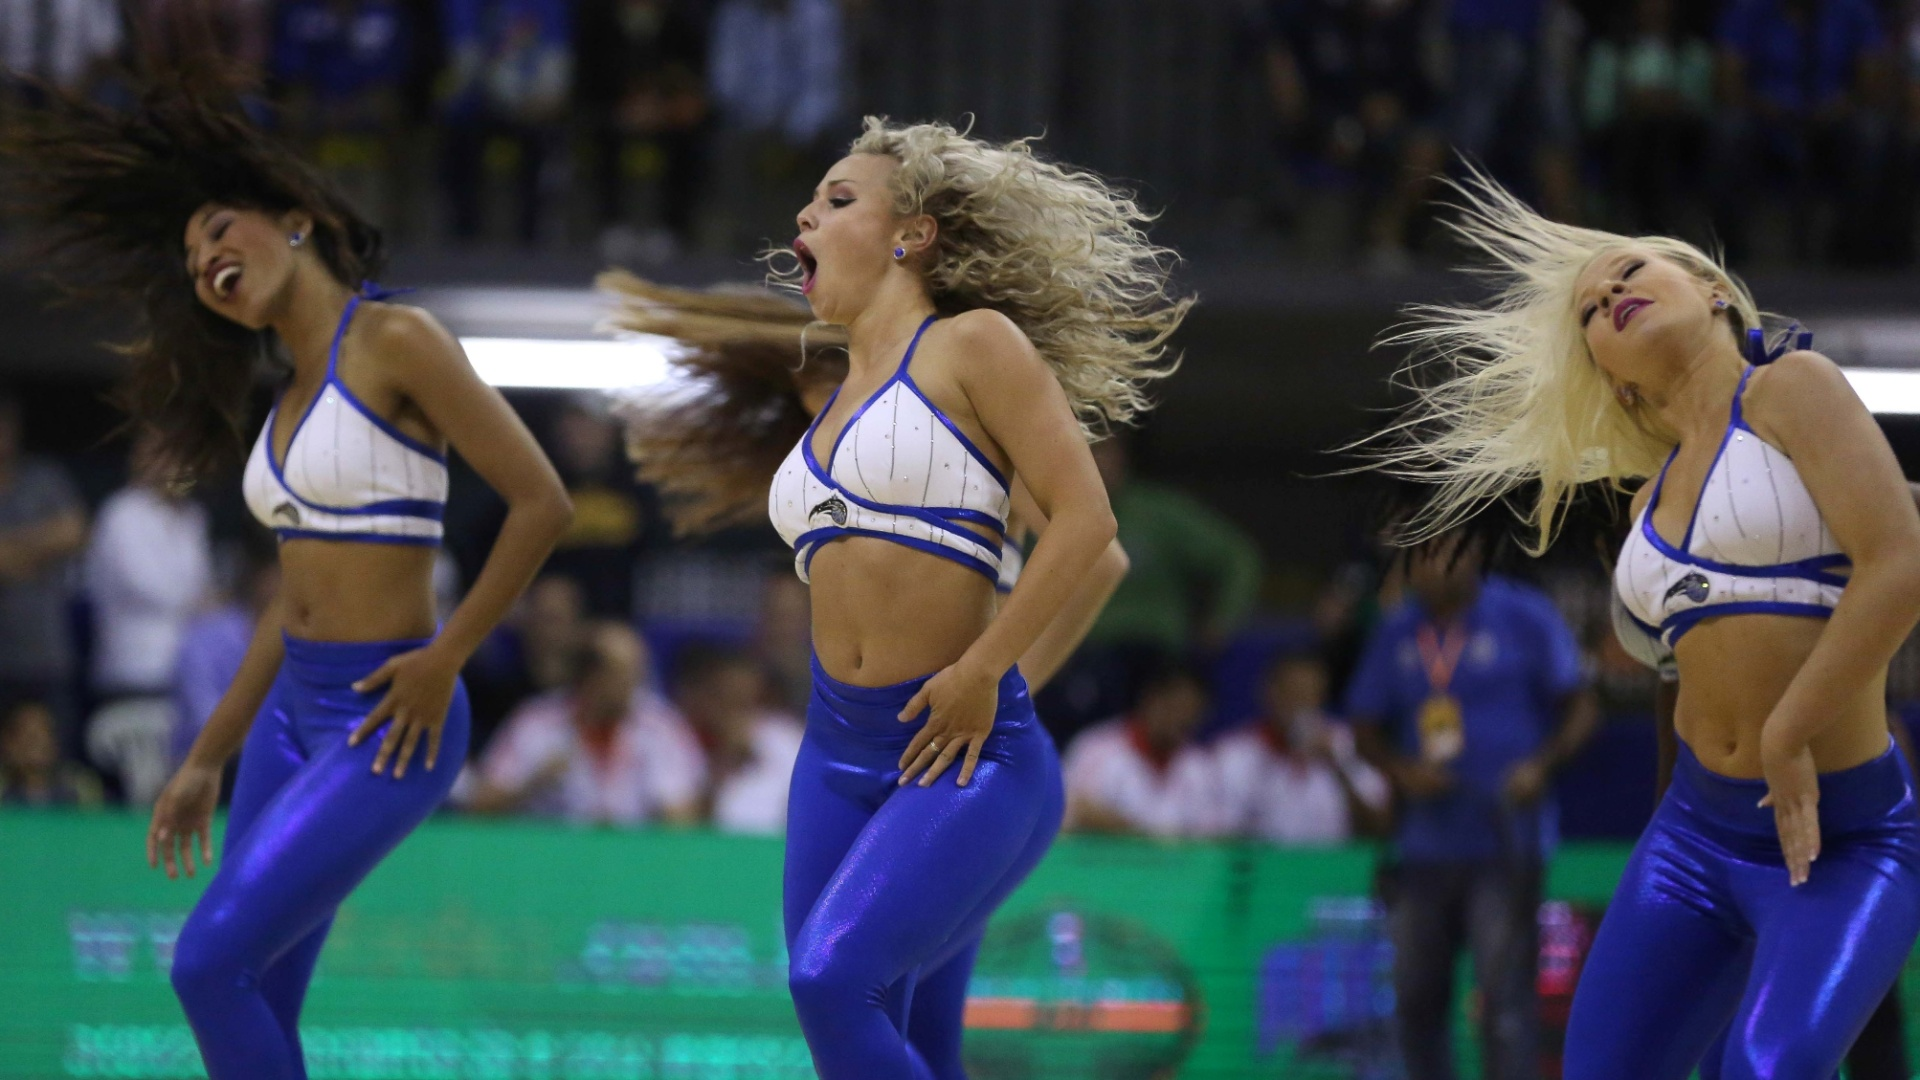 Cheerleaders do Orlando Magic fazem apresentação durante as finais do NBB